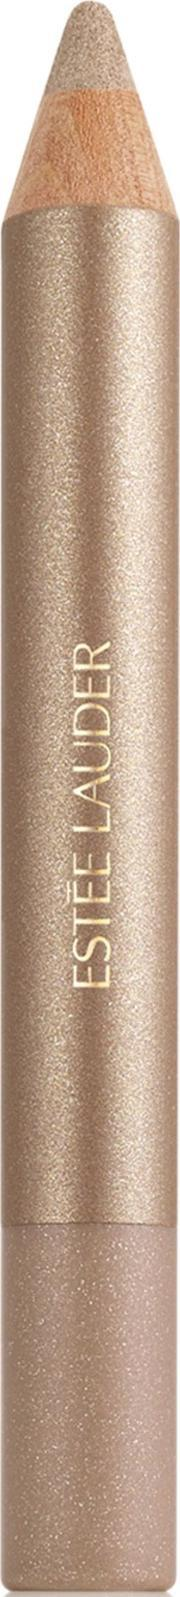 Estee Lauder , Magic Smoky Powder Shadow Stick, Scorched Gold